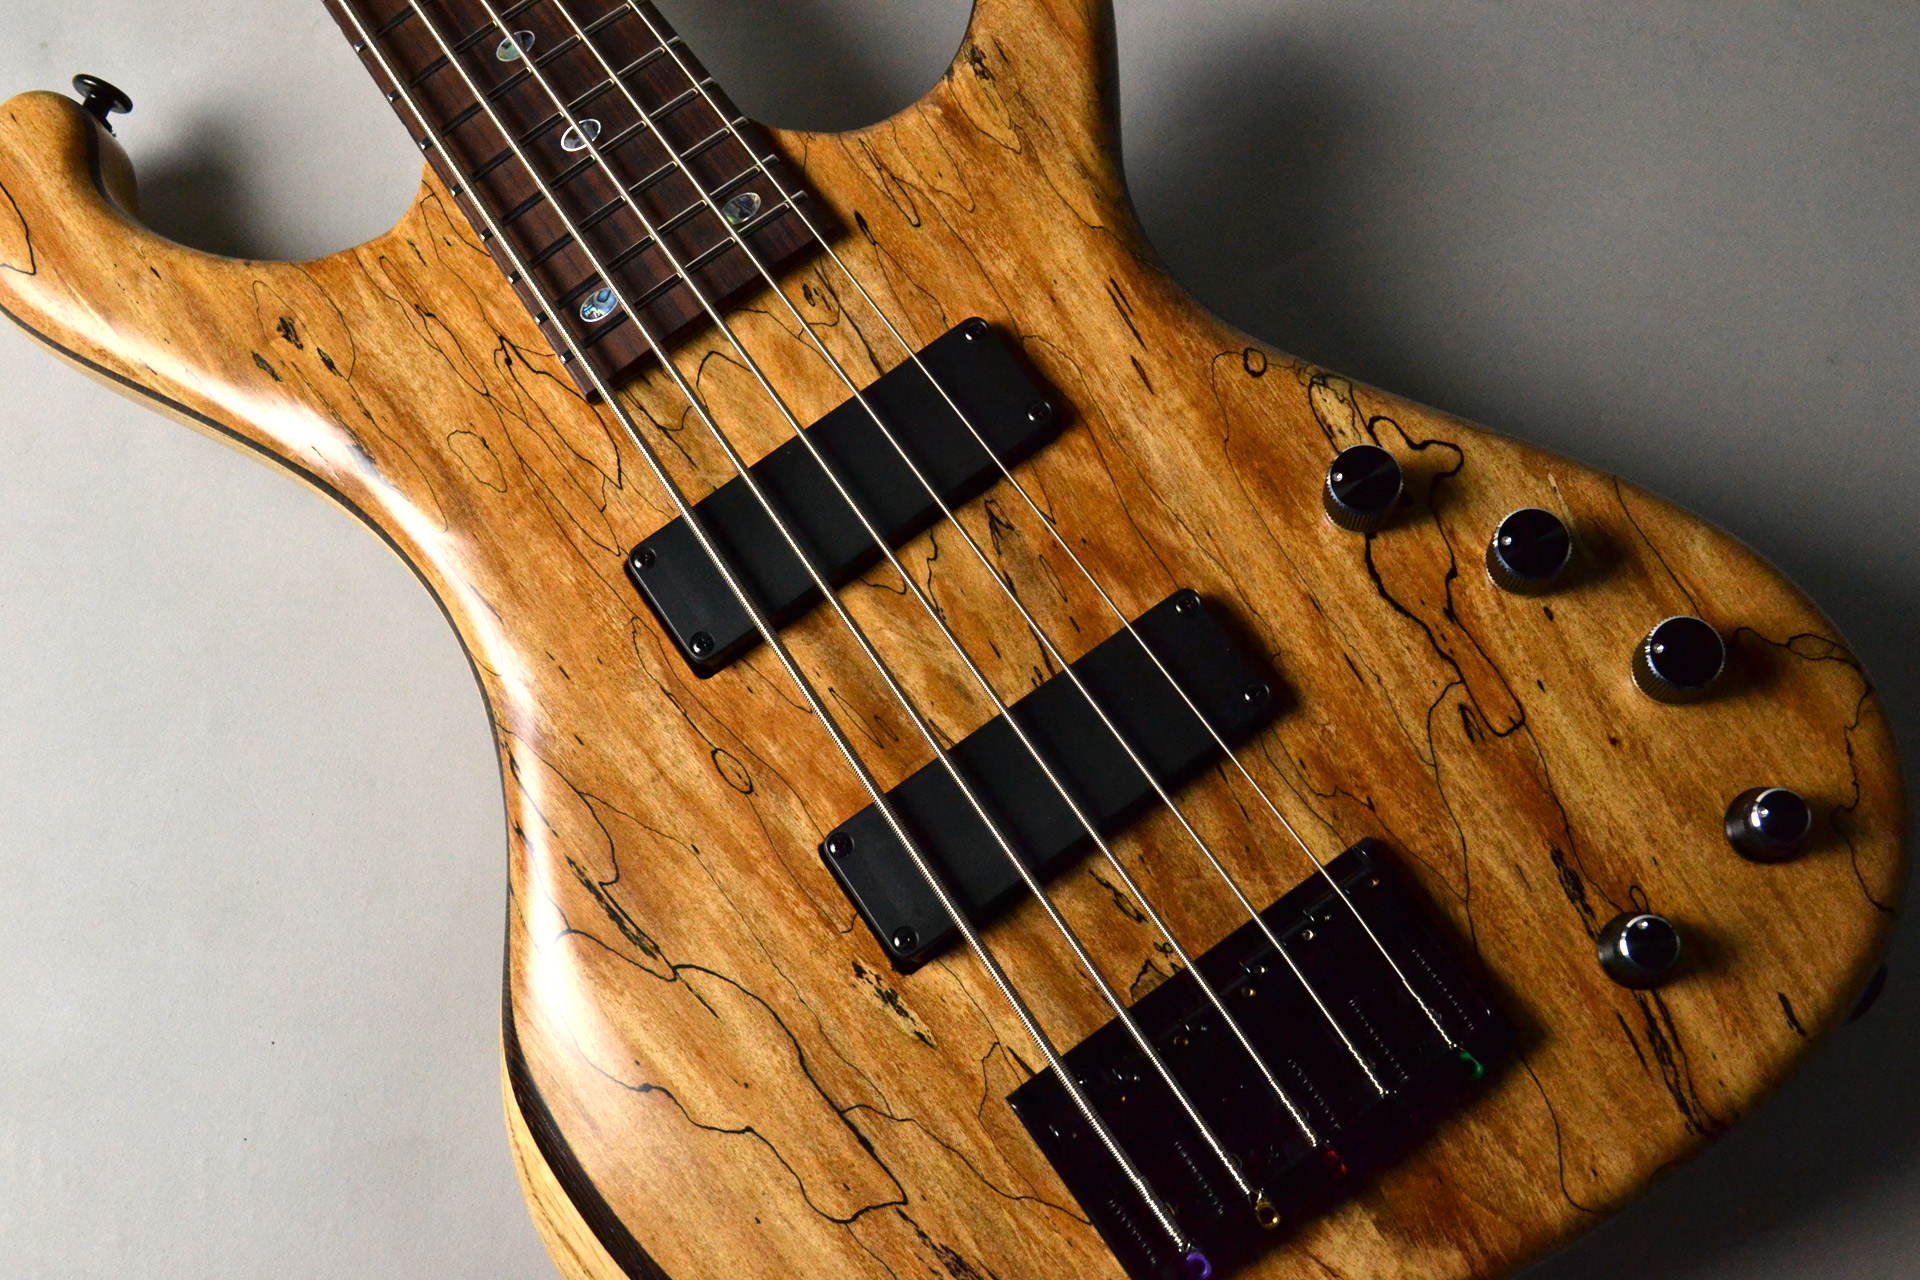 Dulake Flat 5st Spalted Maple/Ashのケース・その他画像